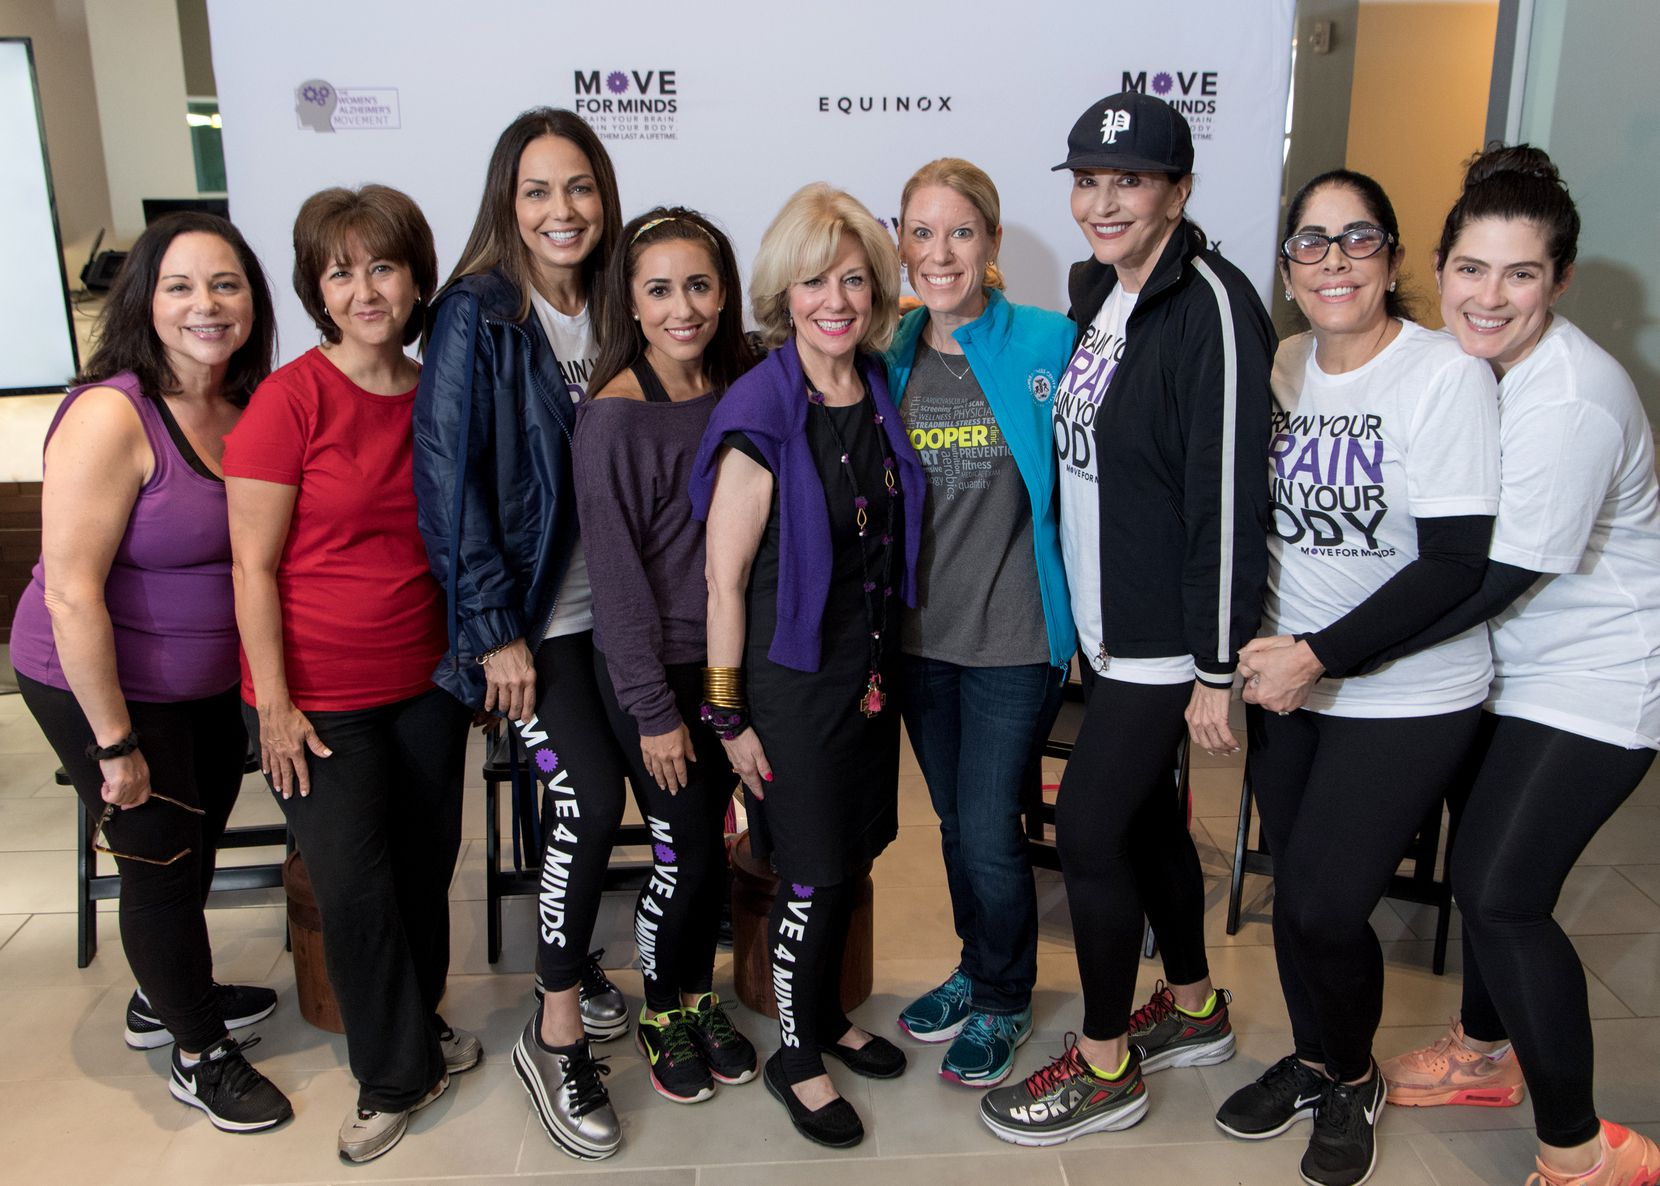 Amy Weinreb (from left), Anna de Haro, Moll Anderson, Sonia Azad, Dr. Sandra Chapman, Katherine Nashatker, JanMiller Rich, Sue Gragg and Nena Oshman attended the Move for Minds event in June.